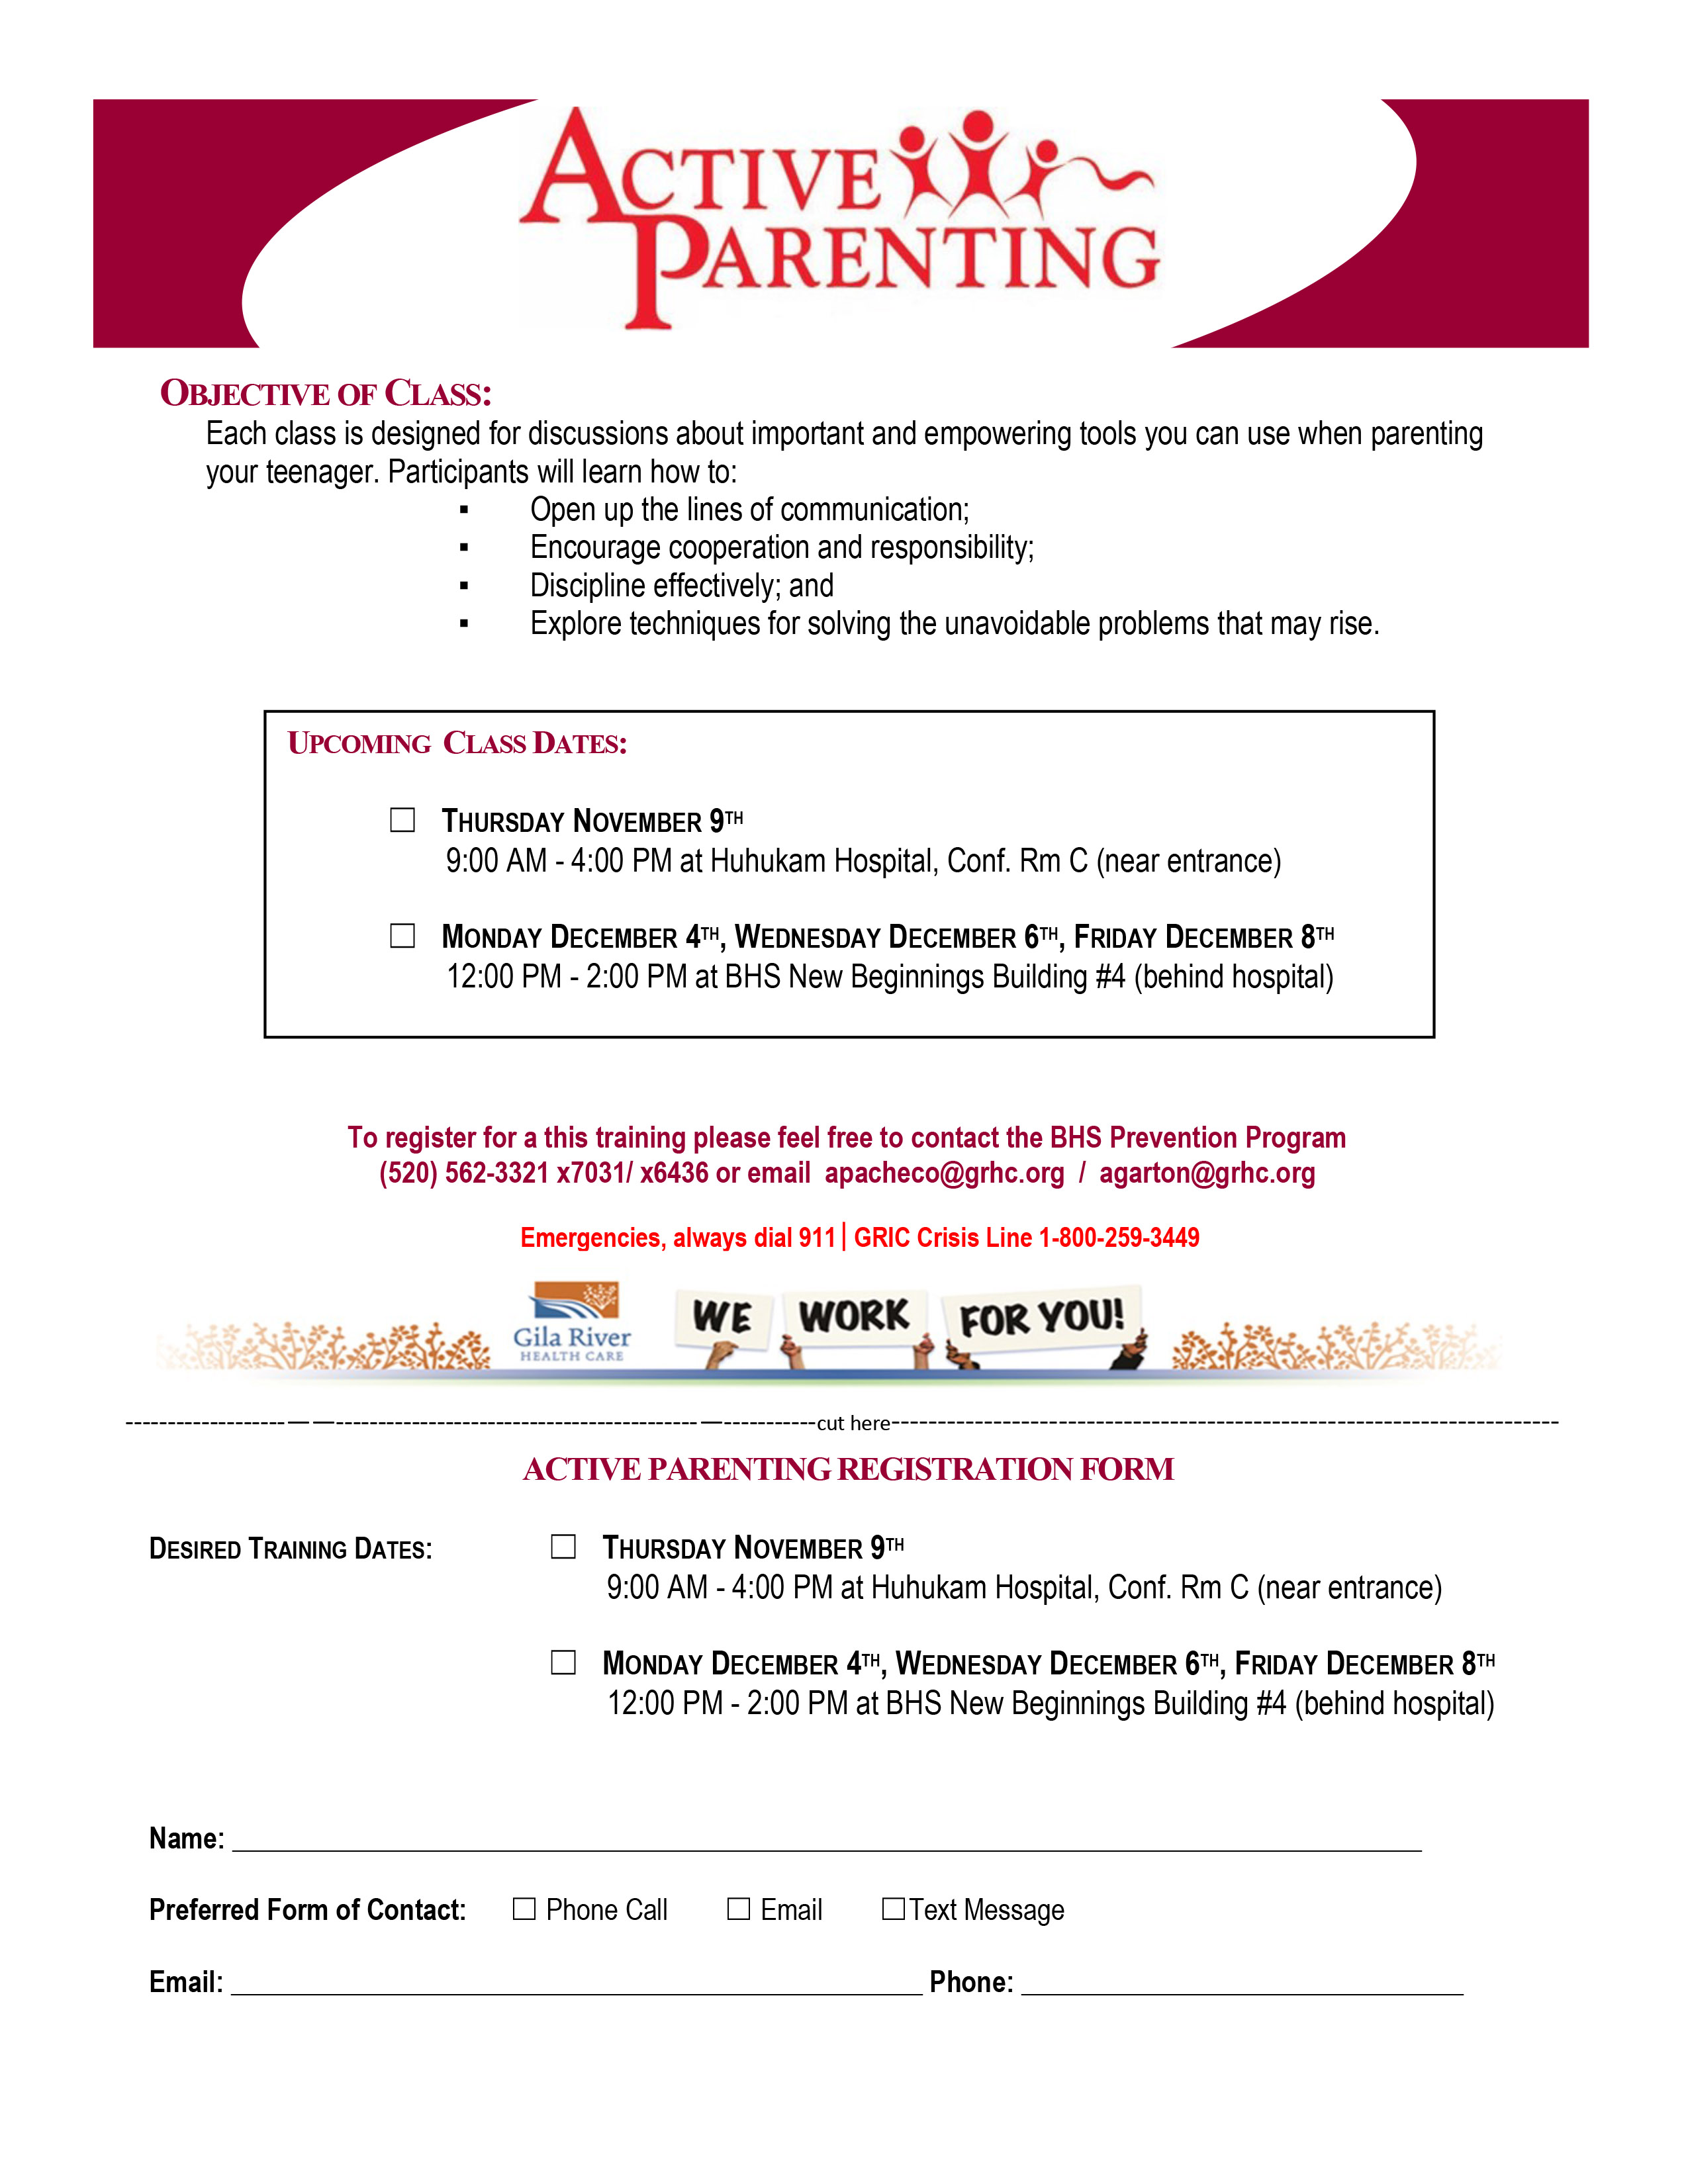 ACTIVE PARENTING REGISTRATION FORM